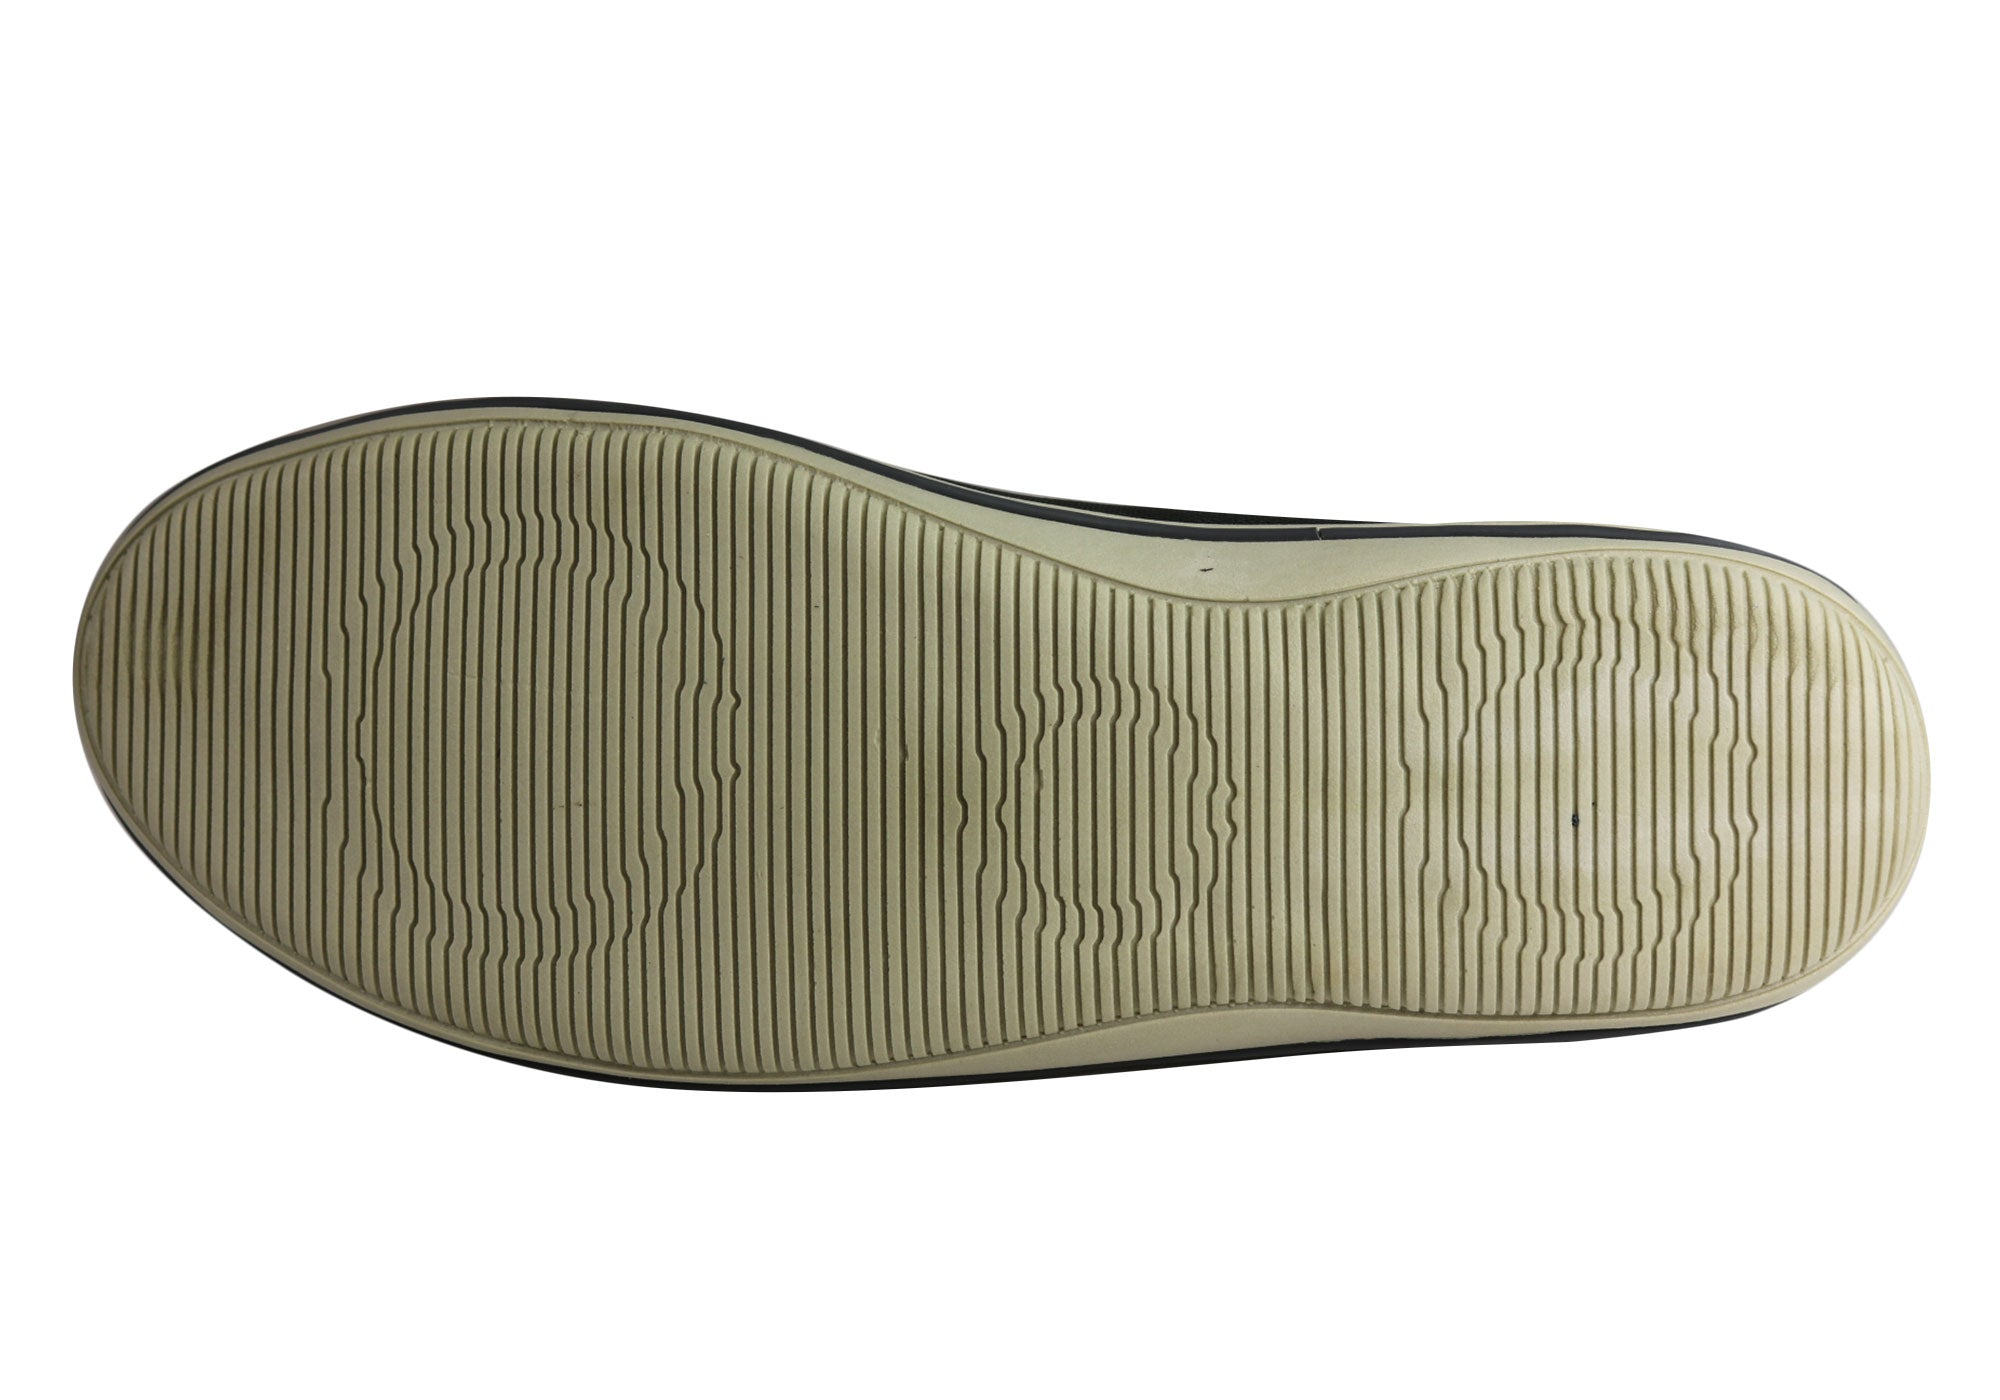 NEW-DEMOCRATA-MILES-MENS-LEATHER-SLIP-ON-CASUAL-SHOES-MADE-IN-BRAZIL thumbnail 12